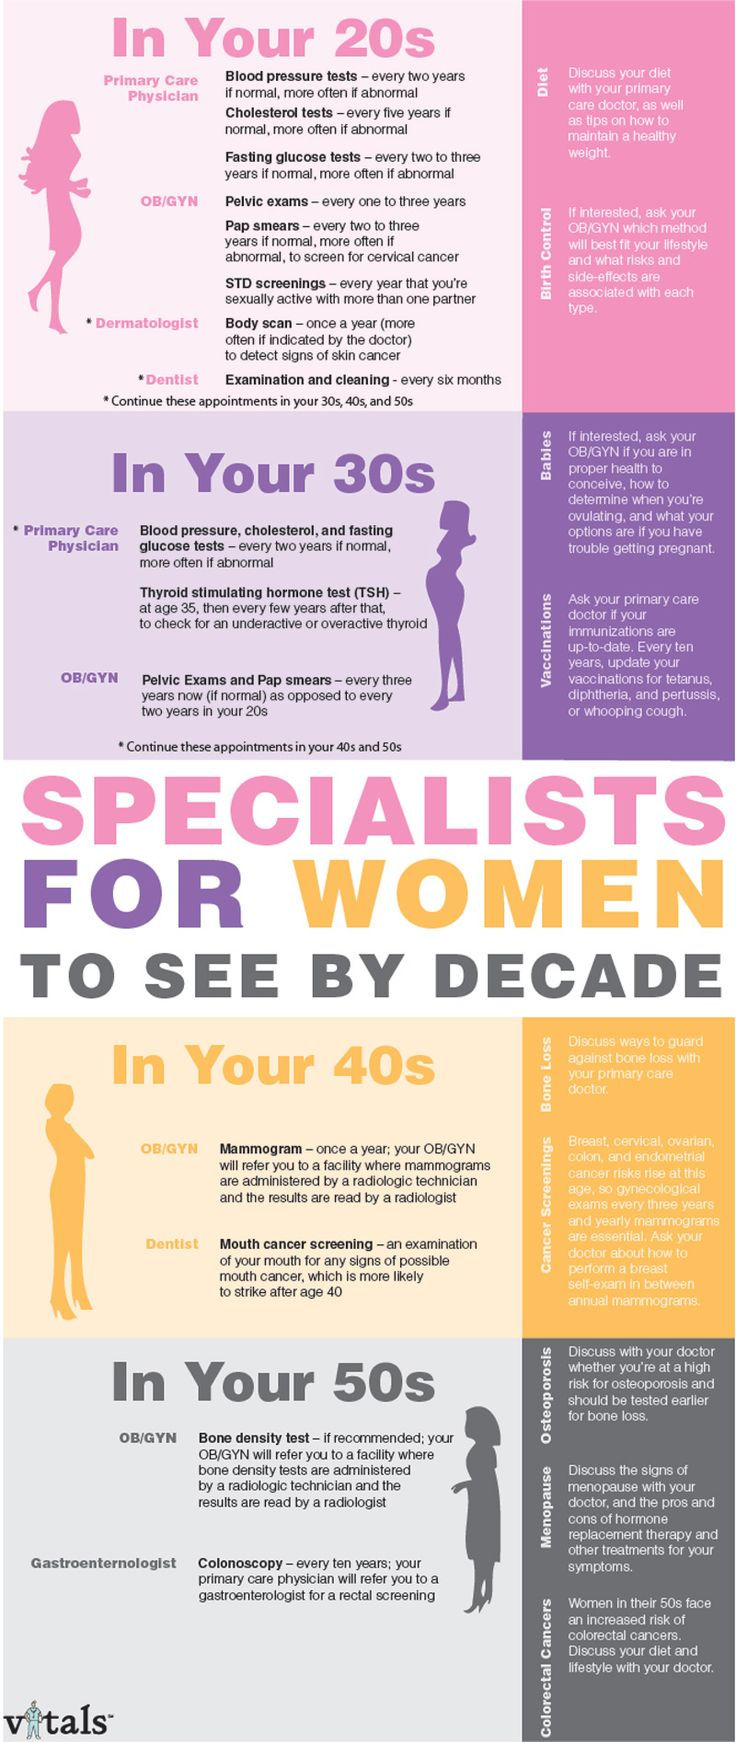 Women's Health: Specialists for women to see by demographic age